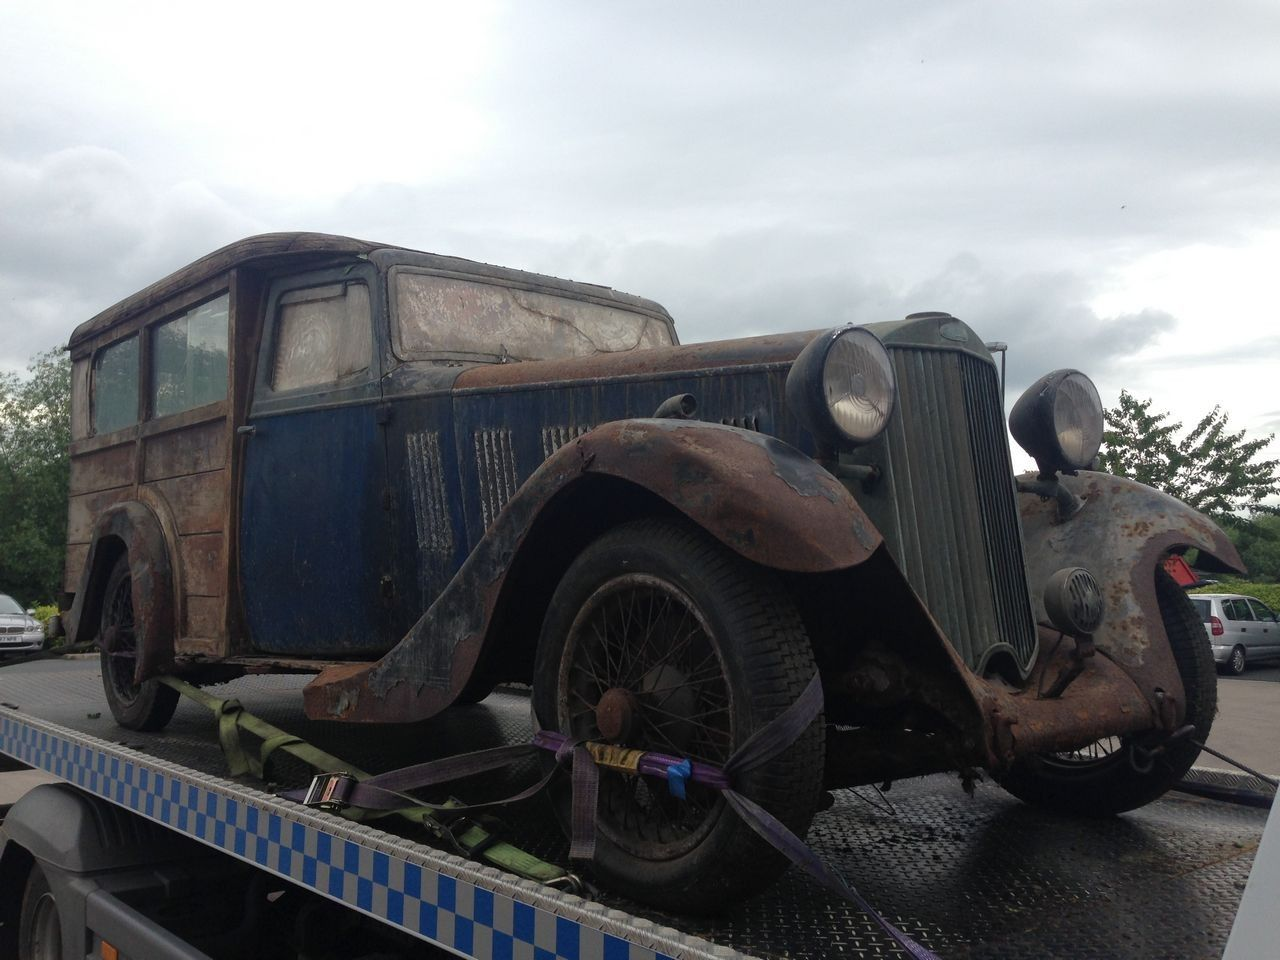 1935 Sunbeam shooting brake Woodie project car.Barn find & for sale 2013